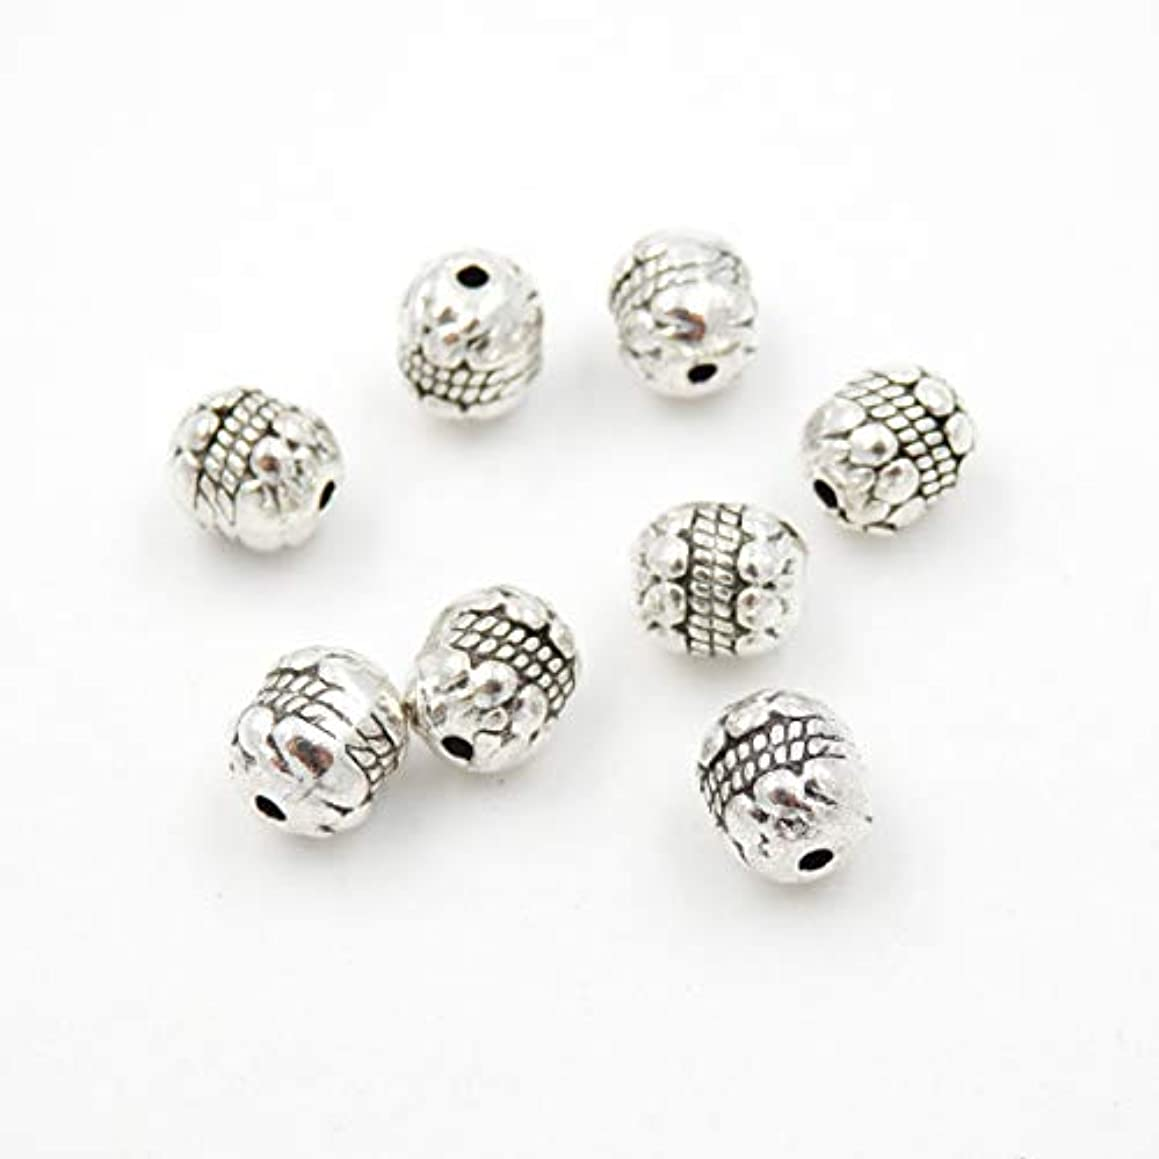 Malahill Metal Beads for Jewelry Making, Charms for jewlery, Sold per Bag 100pcs Inside, Drum Beads 7x8mm